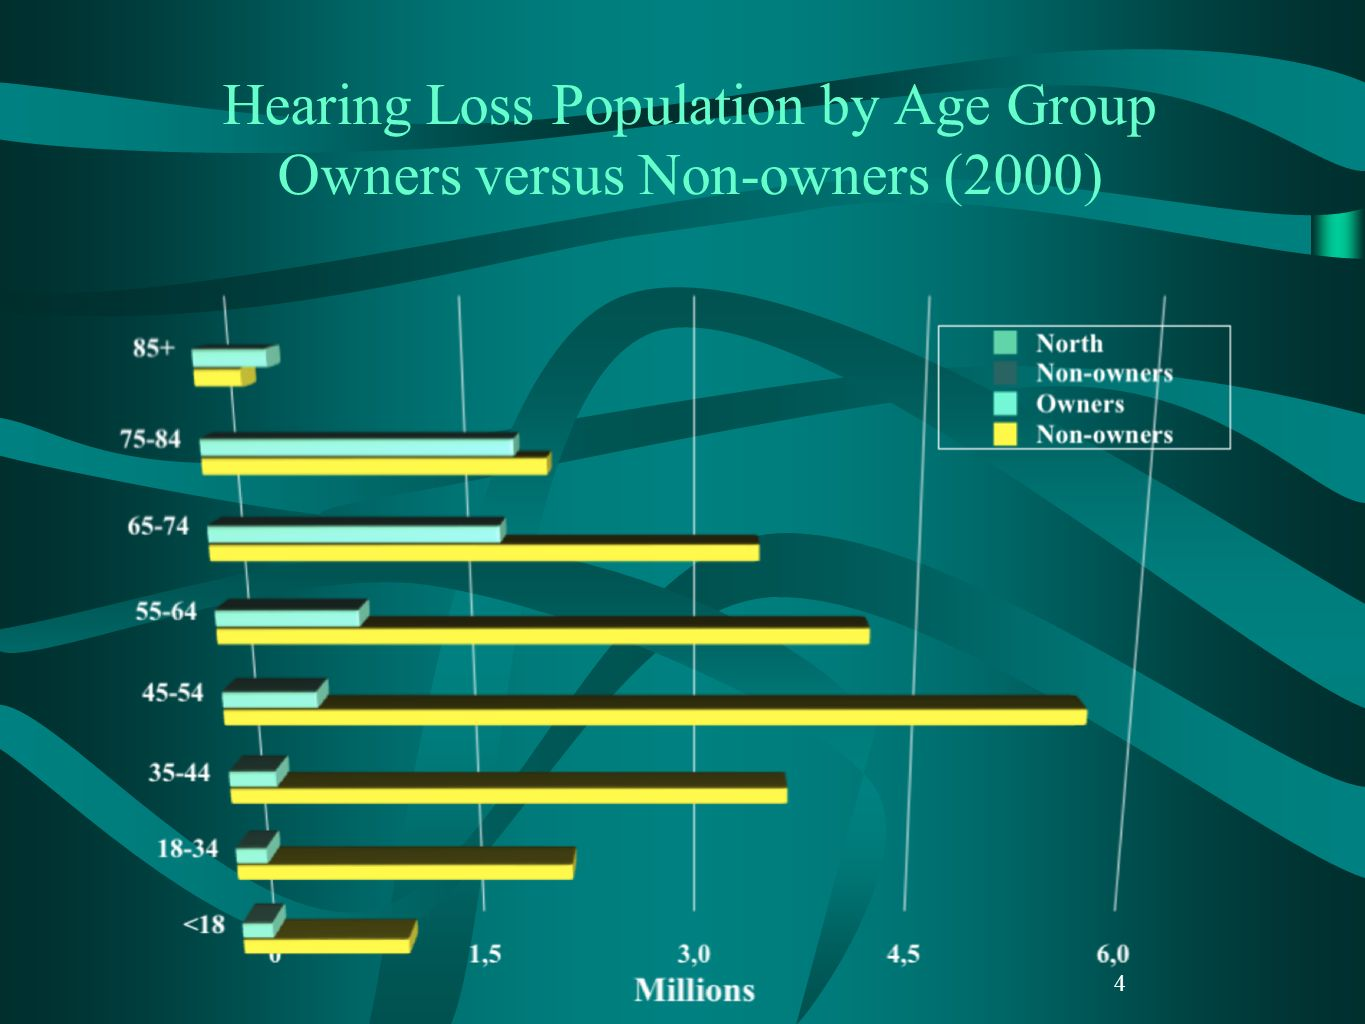 Hearing Loss Population by Age Group Owners versus Non-owners (2000)